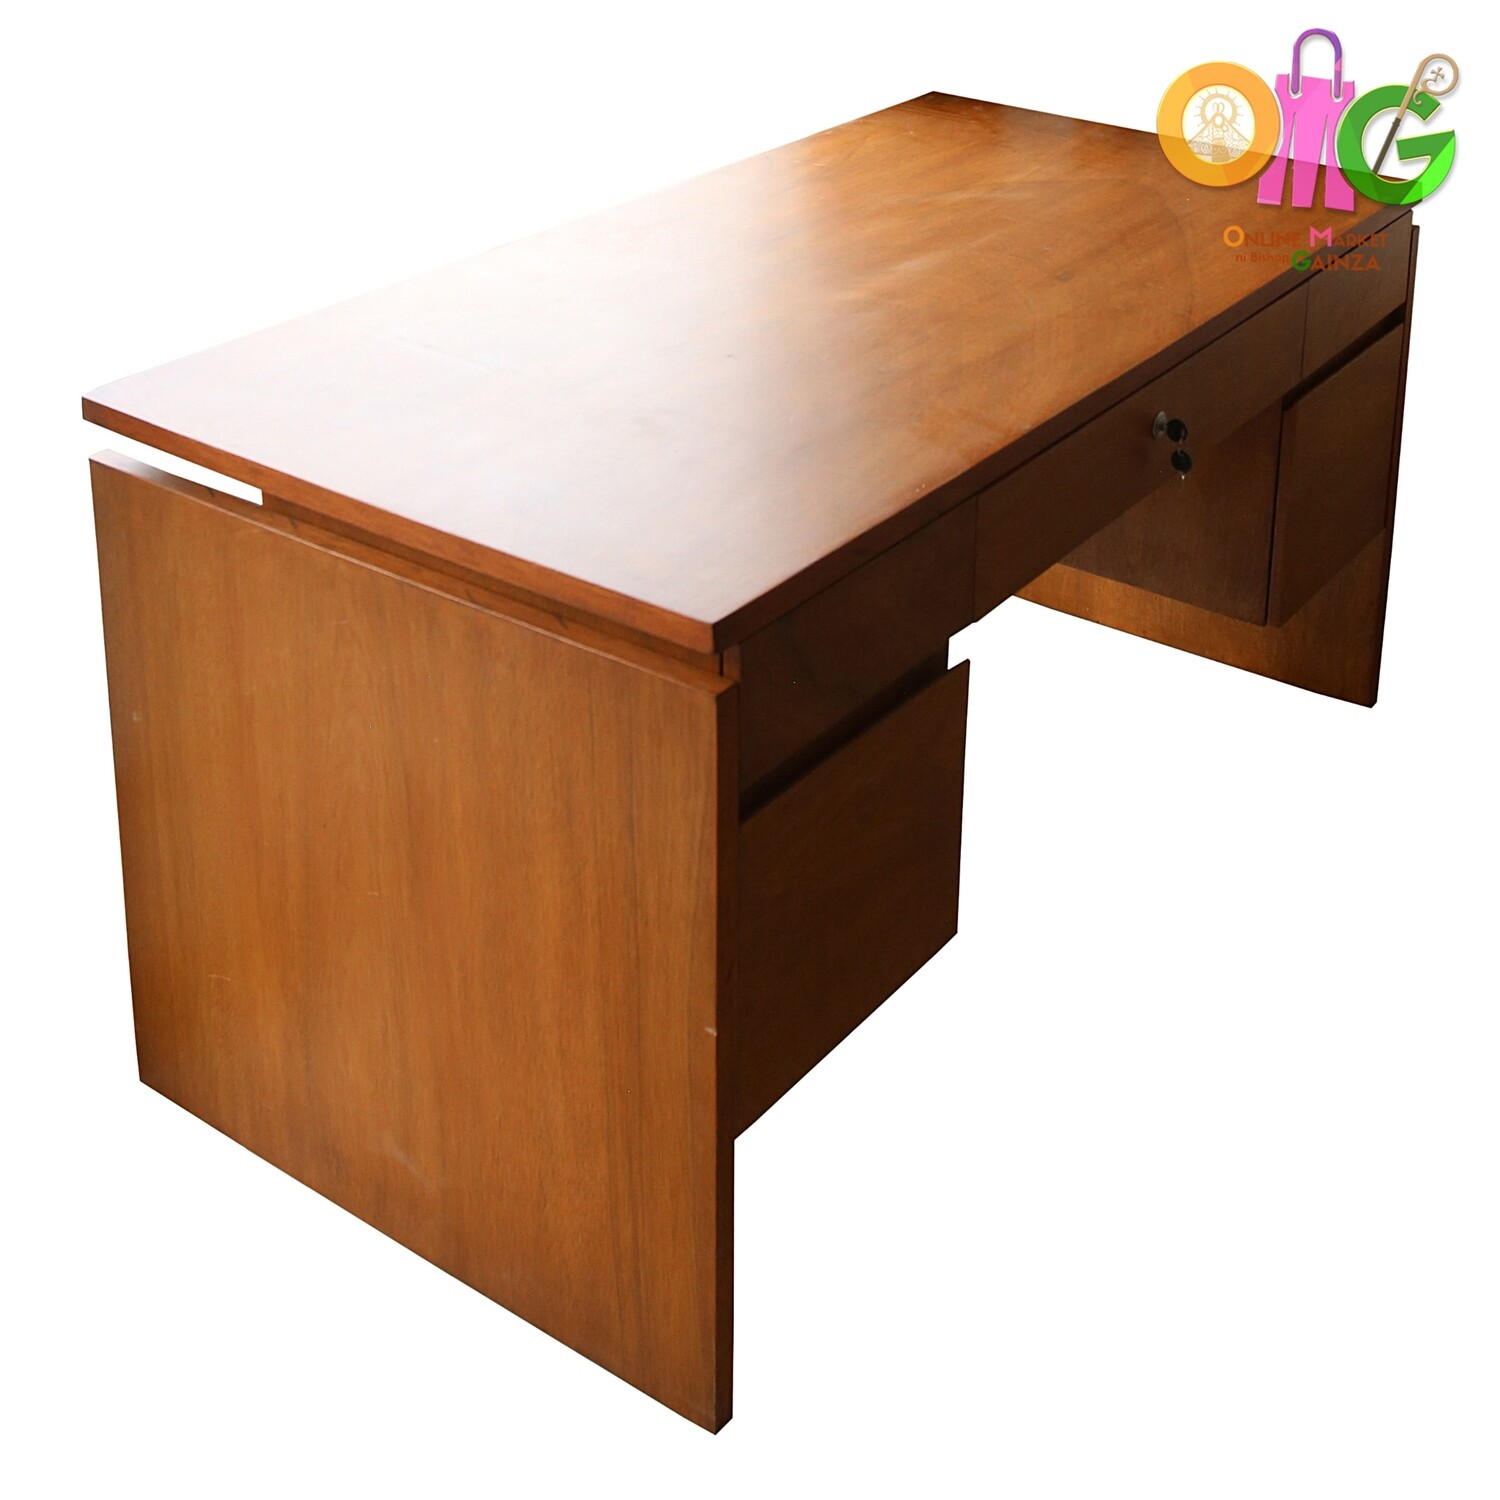 Nitz Furnitures - Knock Down Home/Office Table